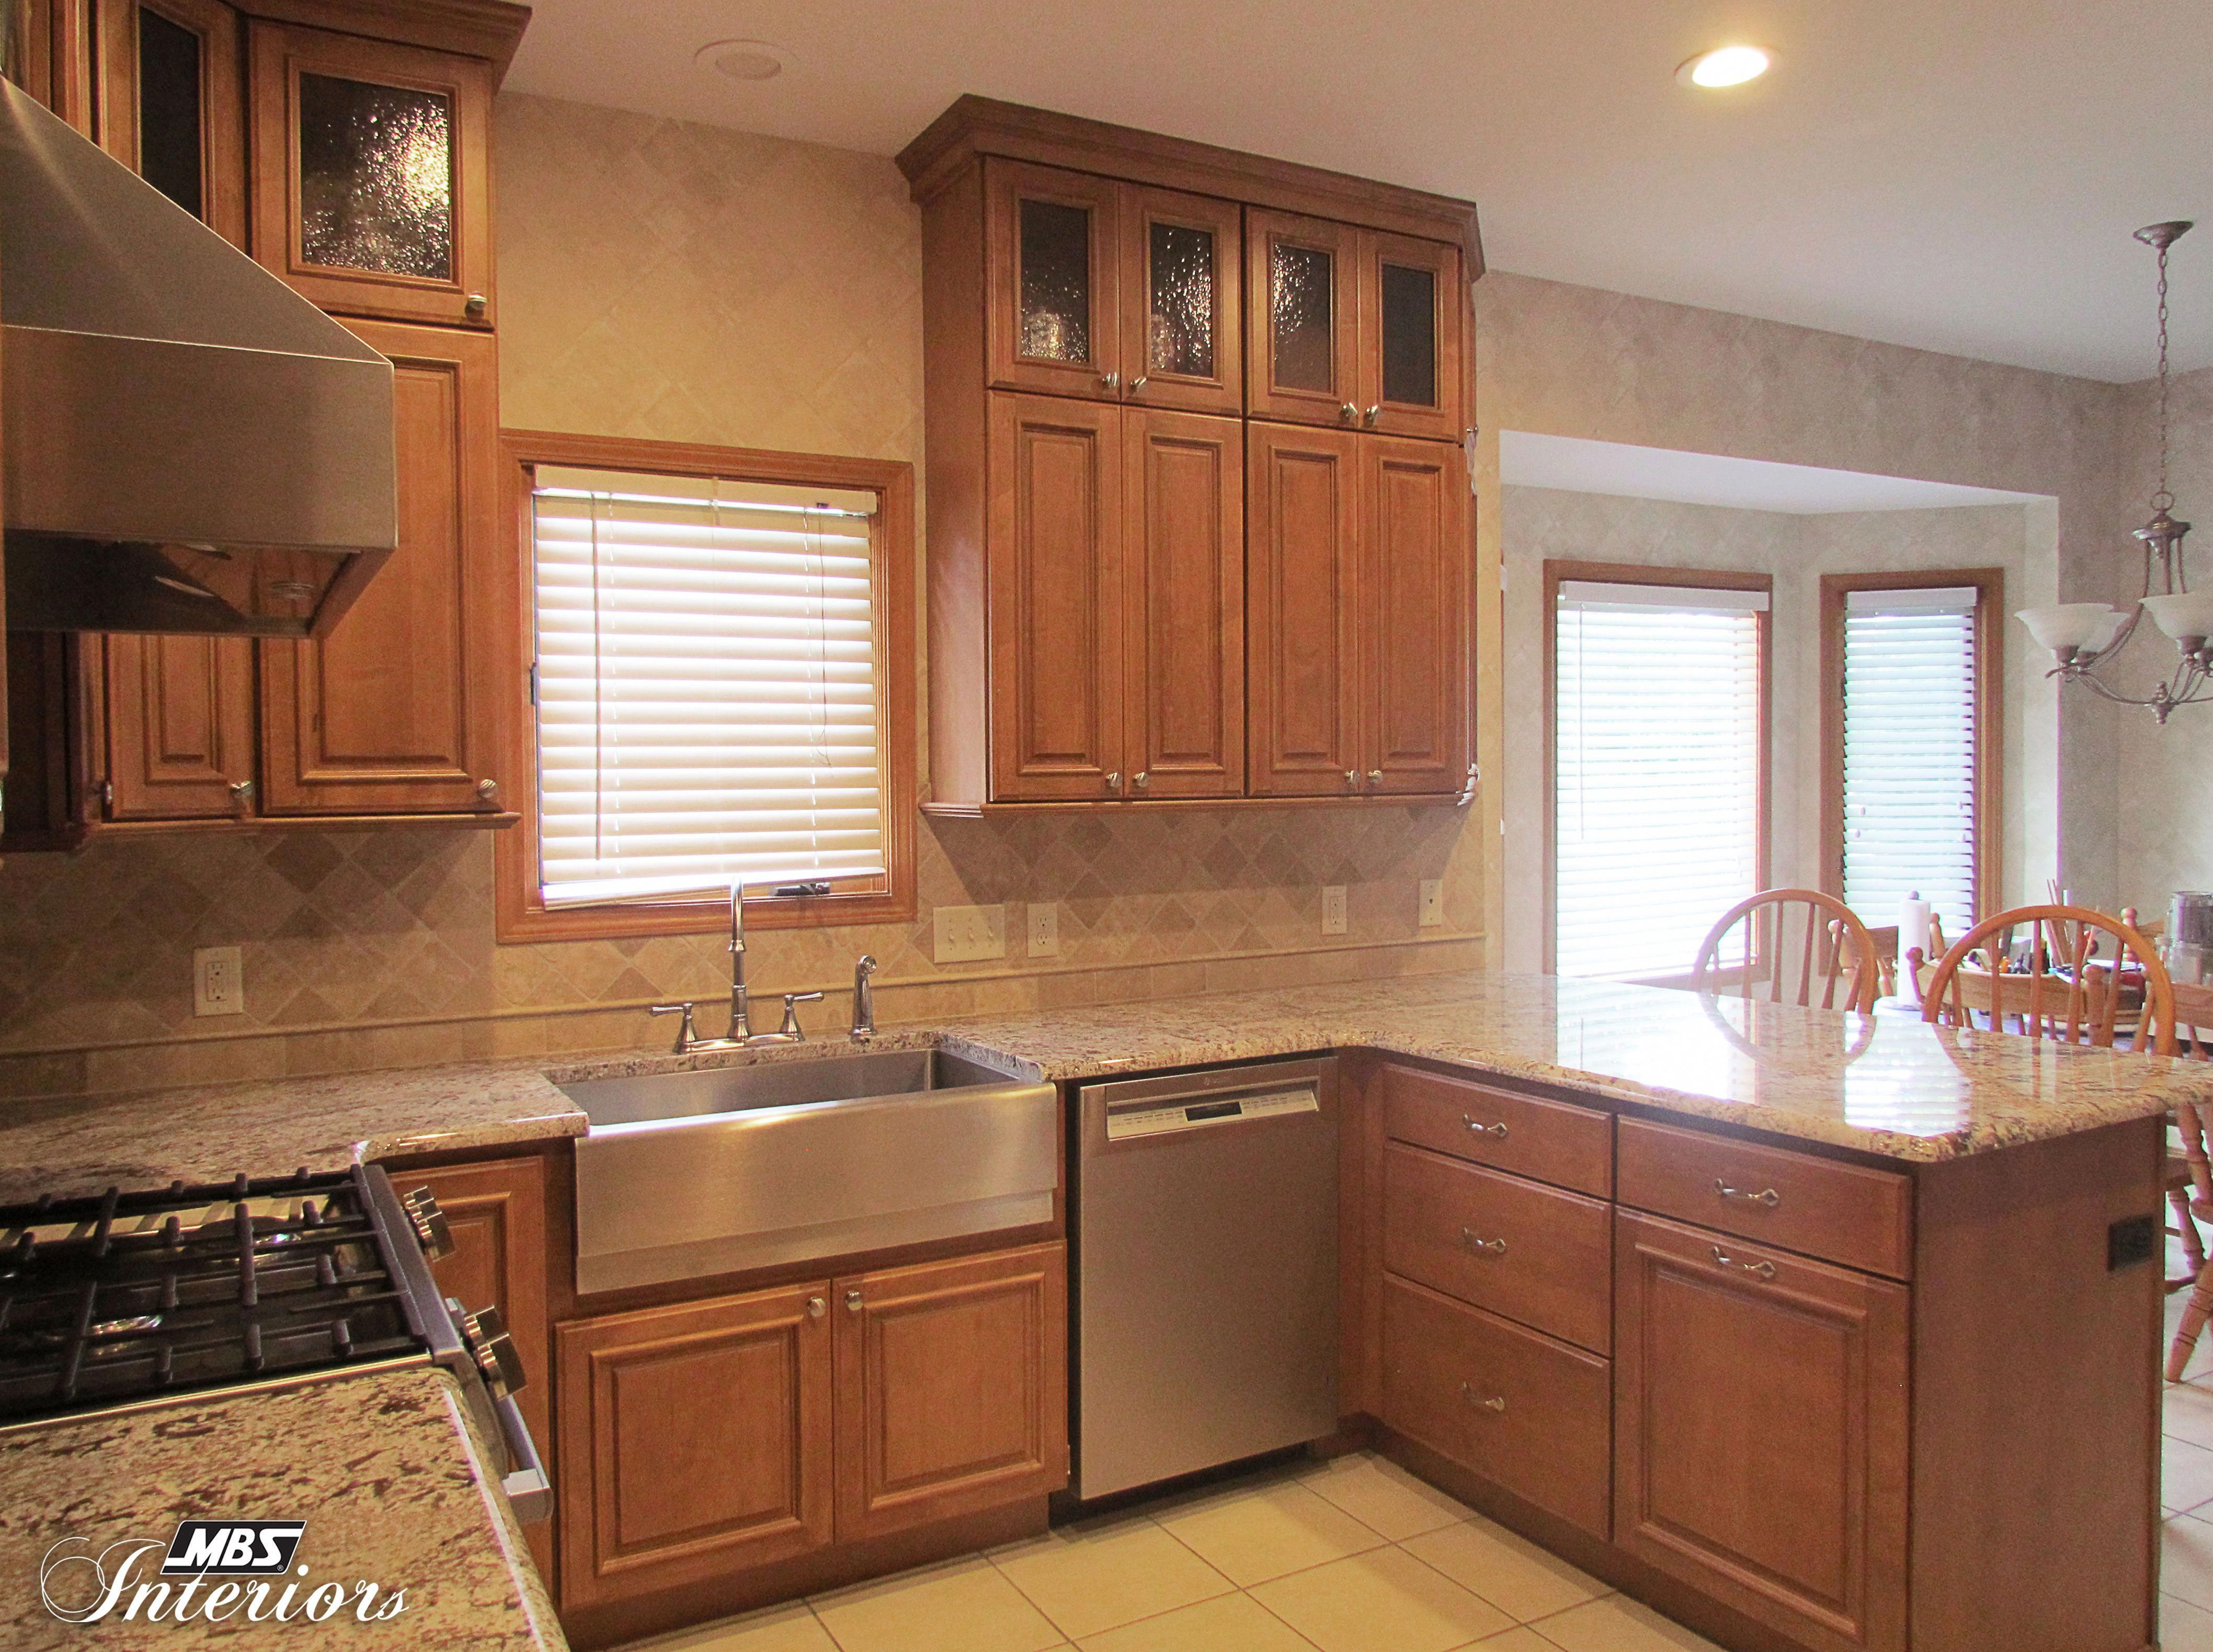 A Kitchen Remodel In Holland Ohio Has A Simple Layout With A Ton Of Character Amy Kitchen Cabinets Design Layout Kitchen Designs Layout Used Kitchen Cabinets